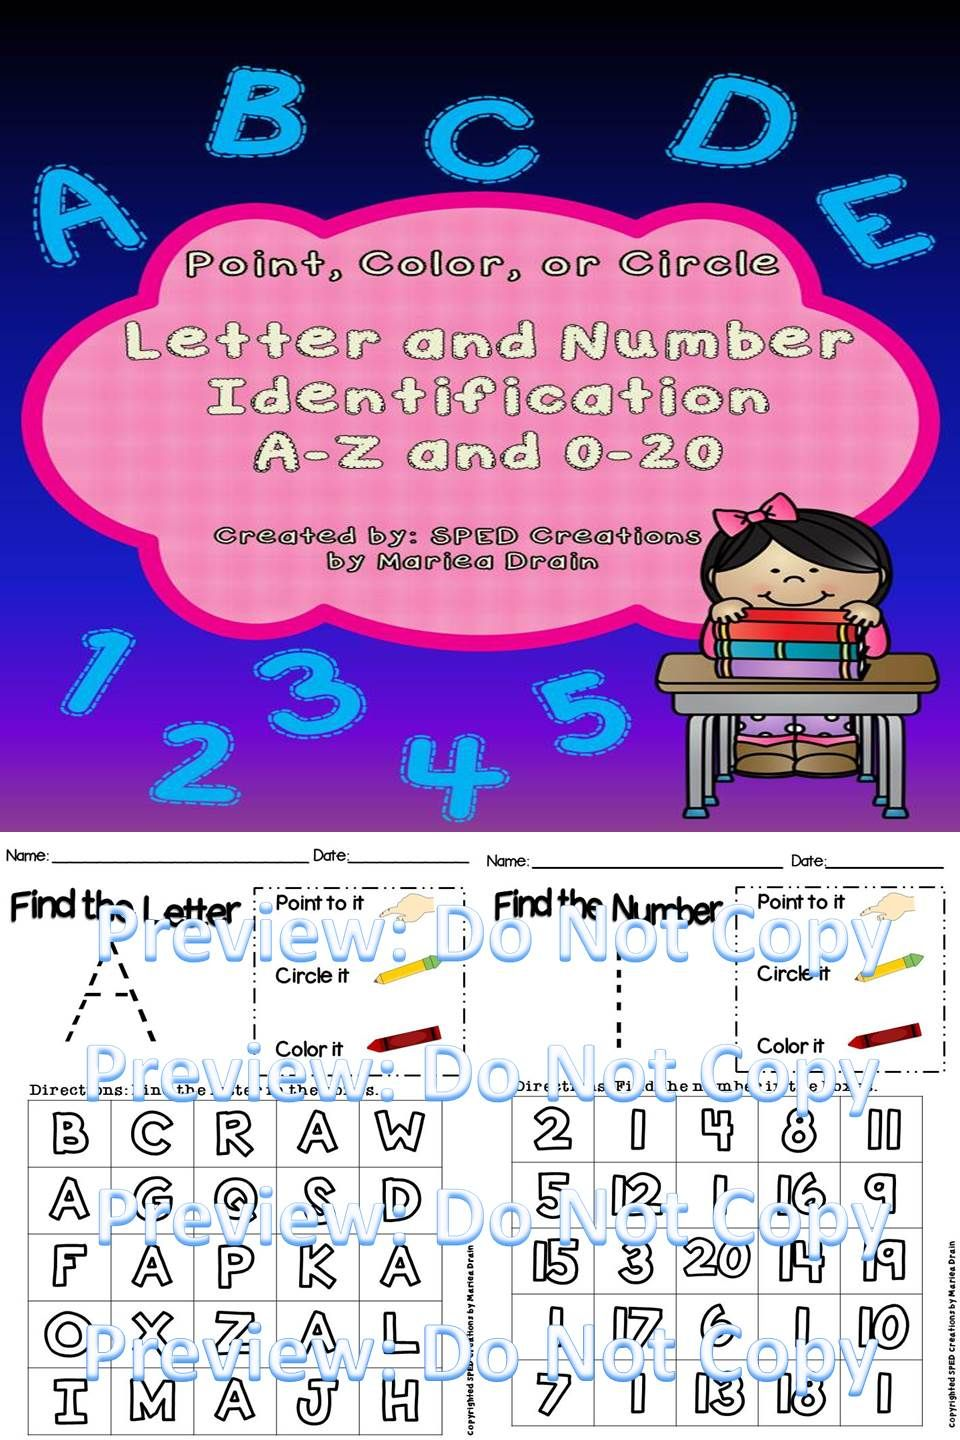 Letter and Number Identification A-Z and 0-20: Point, Color, or ...